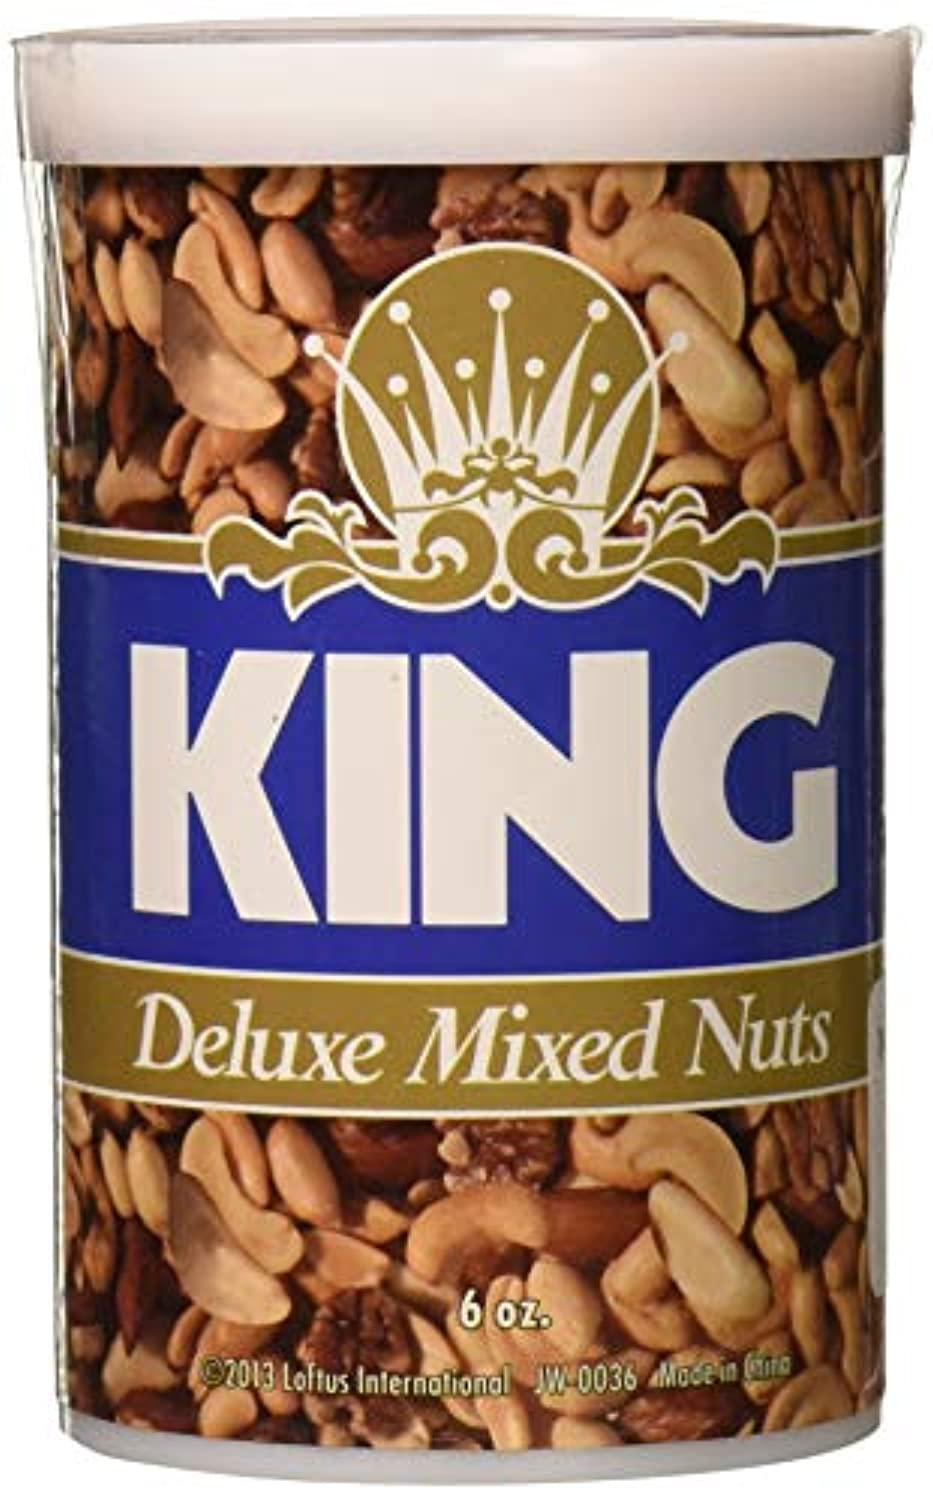 King Deluxe Mixed Nuts - Three Snakes in Each Can by Loftus [Toy] [並行輸入品]